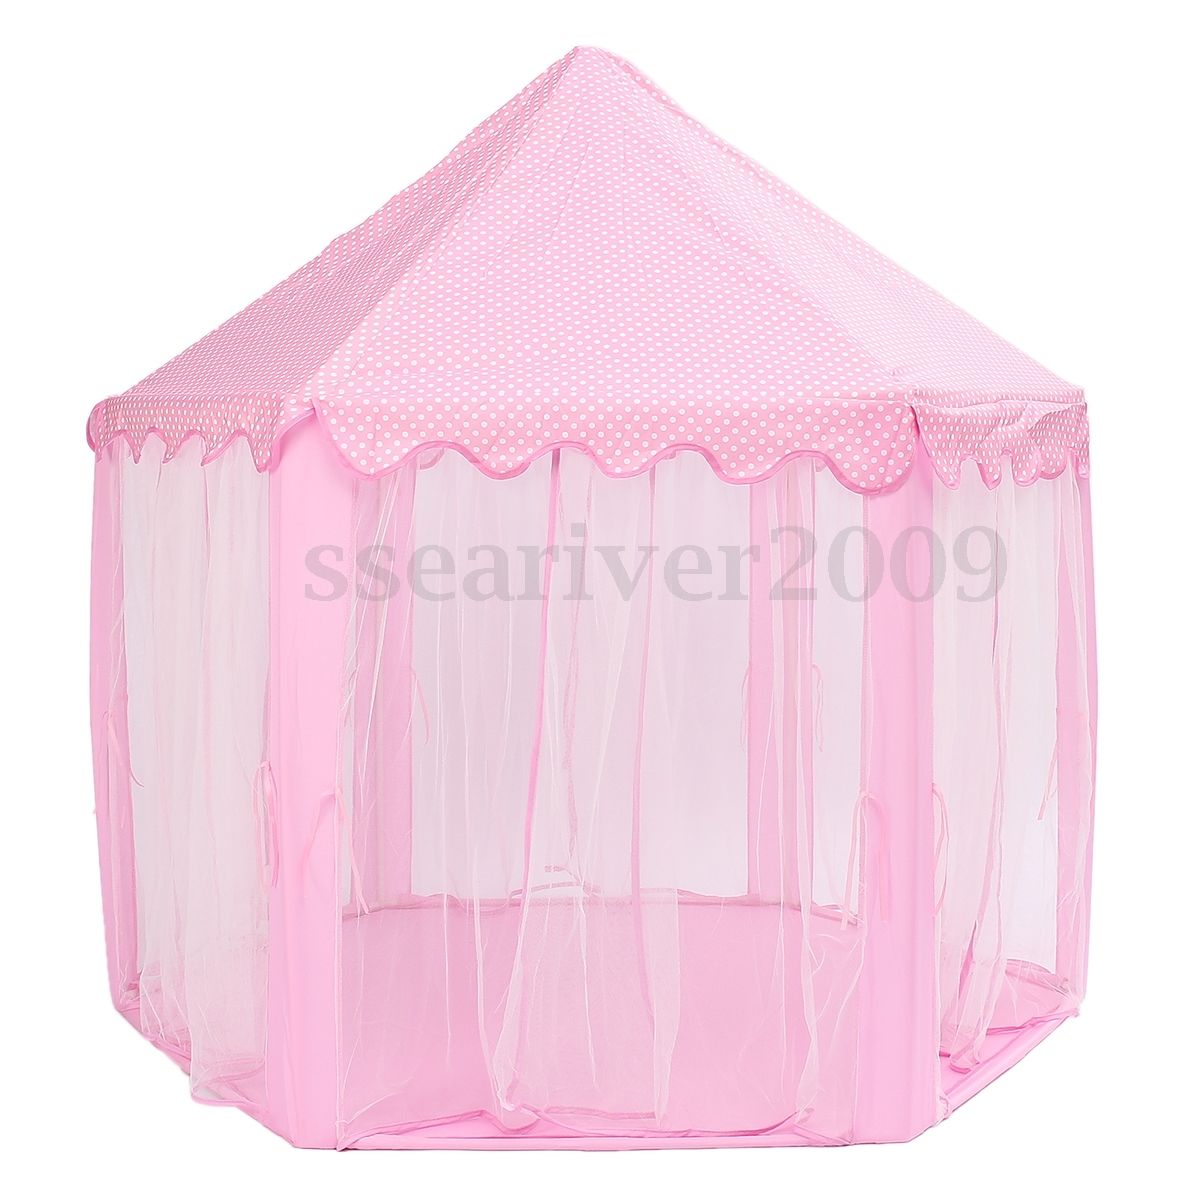 Dalosdream Large Girls Pink Princess Castle Playhouse Children Children Teepee Tent For Kids-in Toy Tents from Toys u0026 Hobbies on Aliexpress.com | Alibaba ...  sc 1 st  AliExpress.com & Dalosdream Large Girls Pink Princess Castle Playhouse Children ...